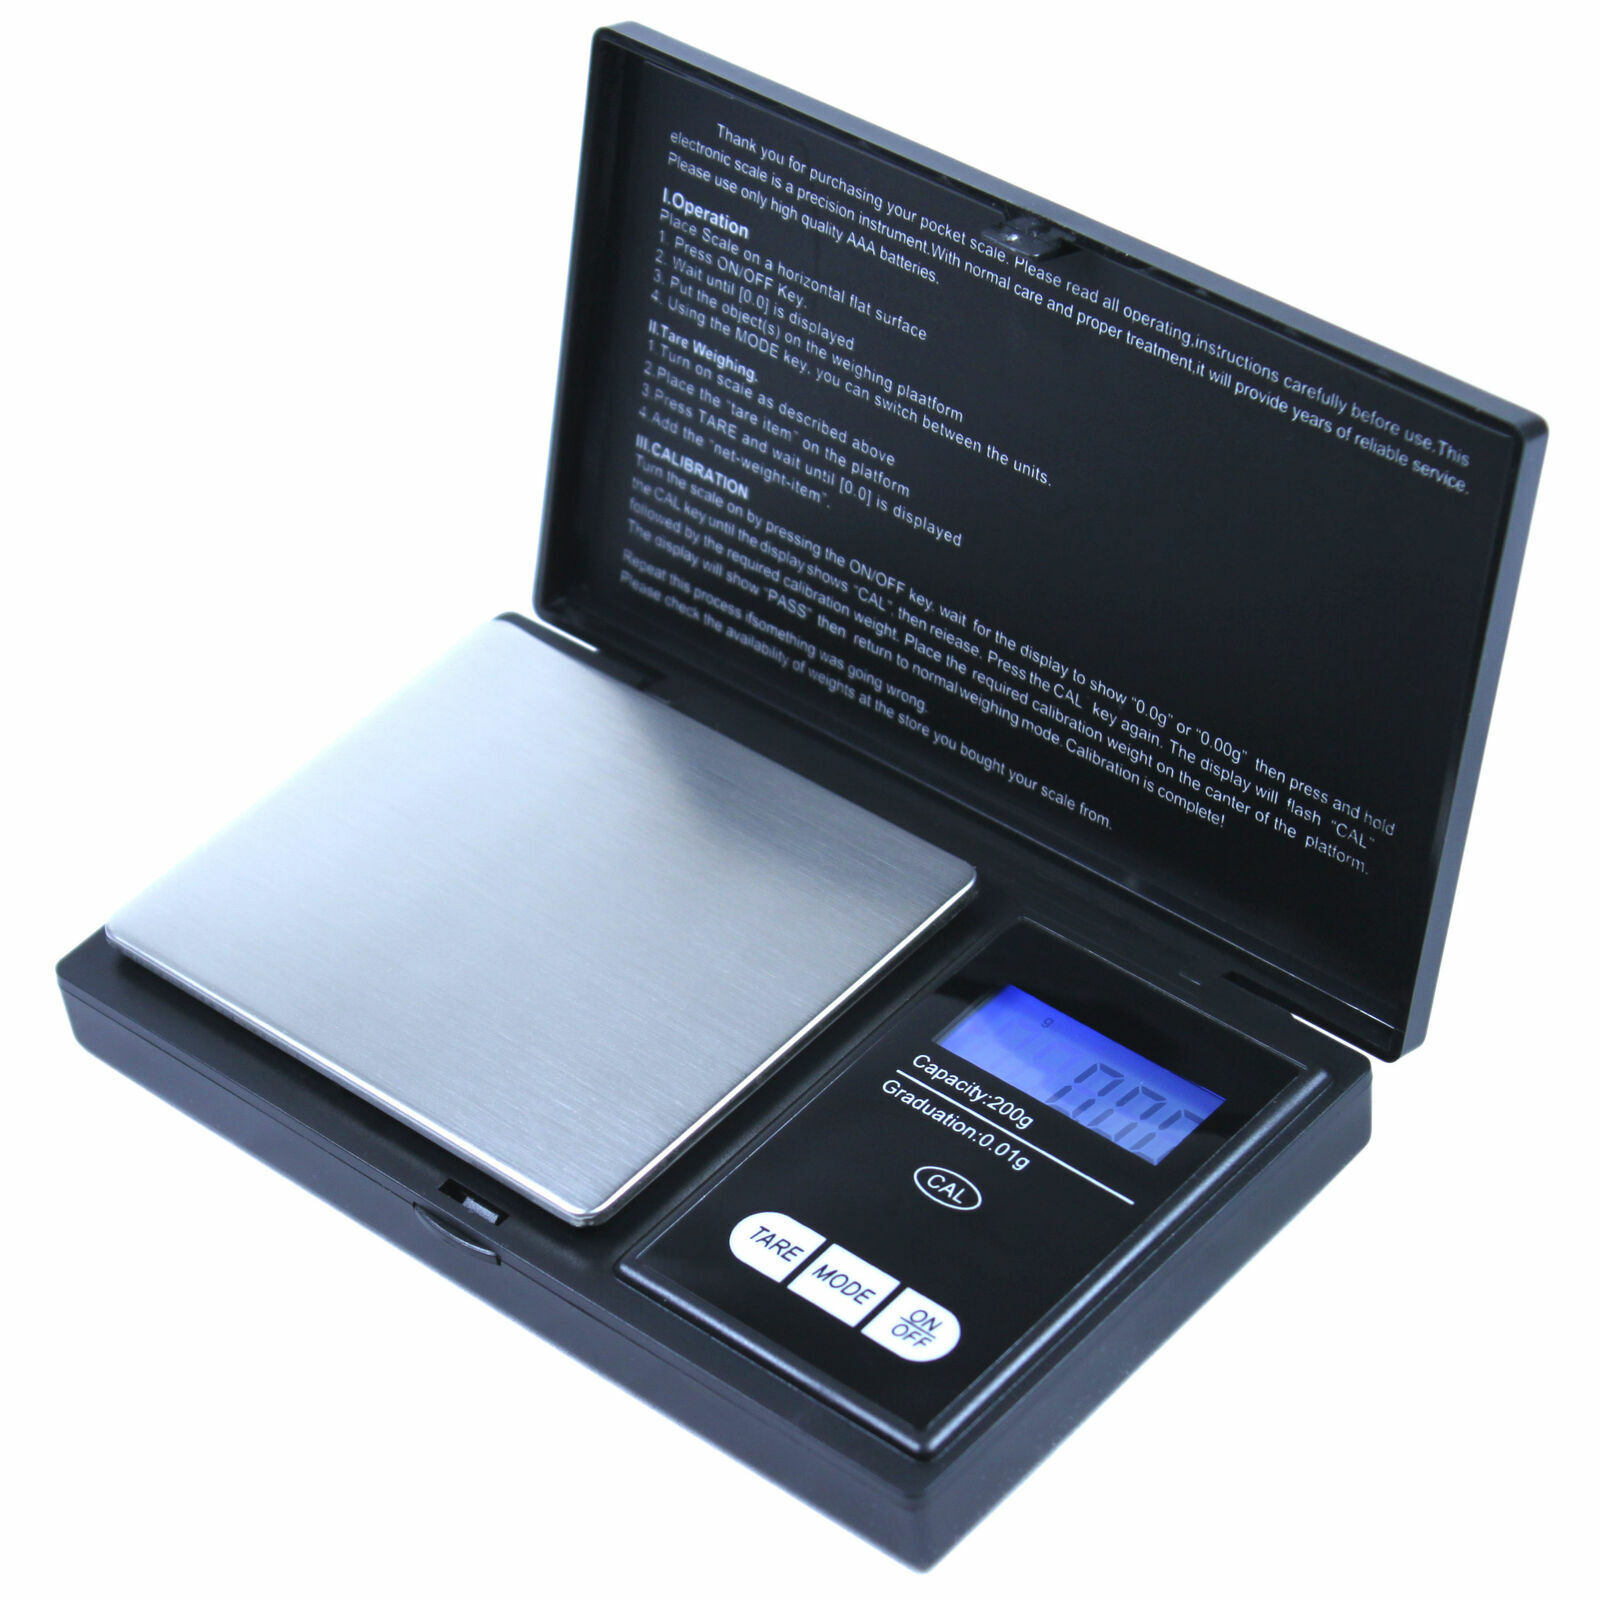 45b8a3fab590 CS-100 Digital Portable Jewerly Scale 100g by 0.01g Precision